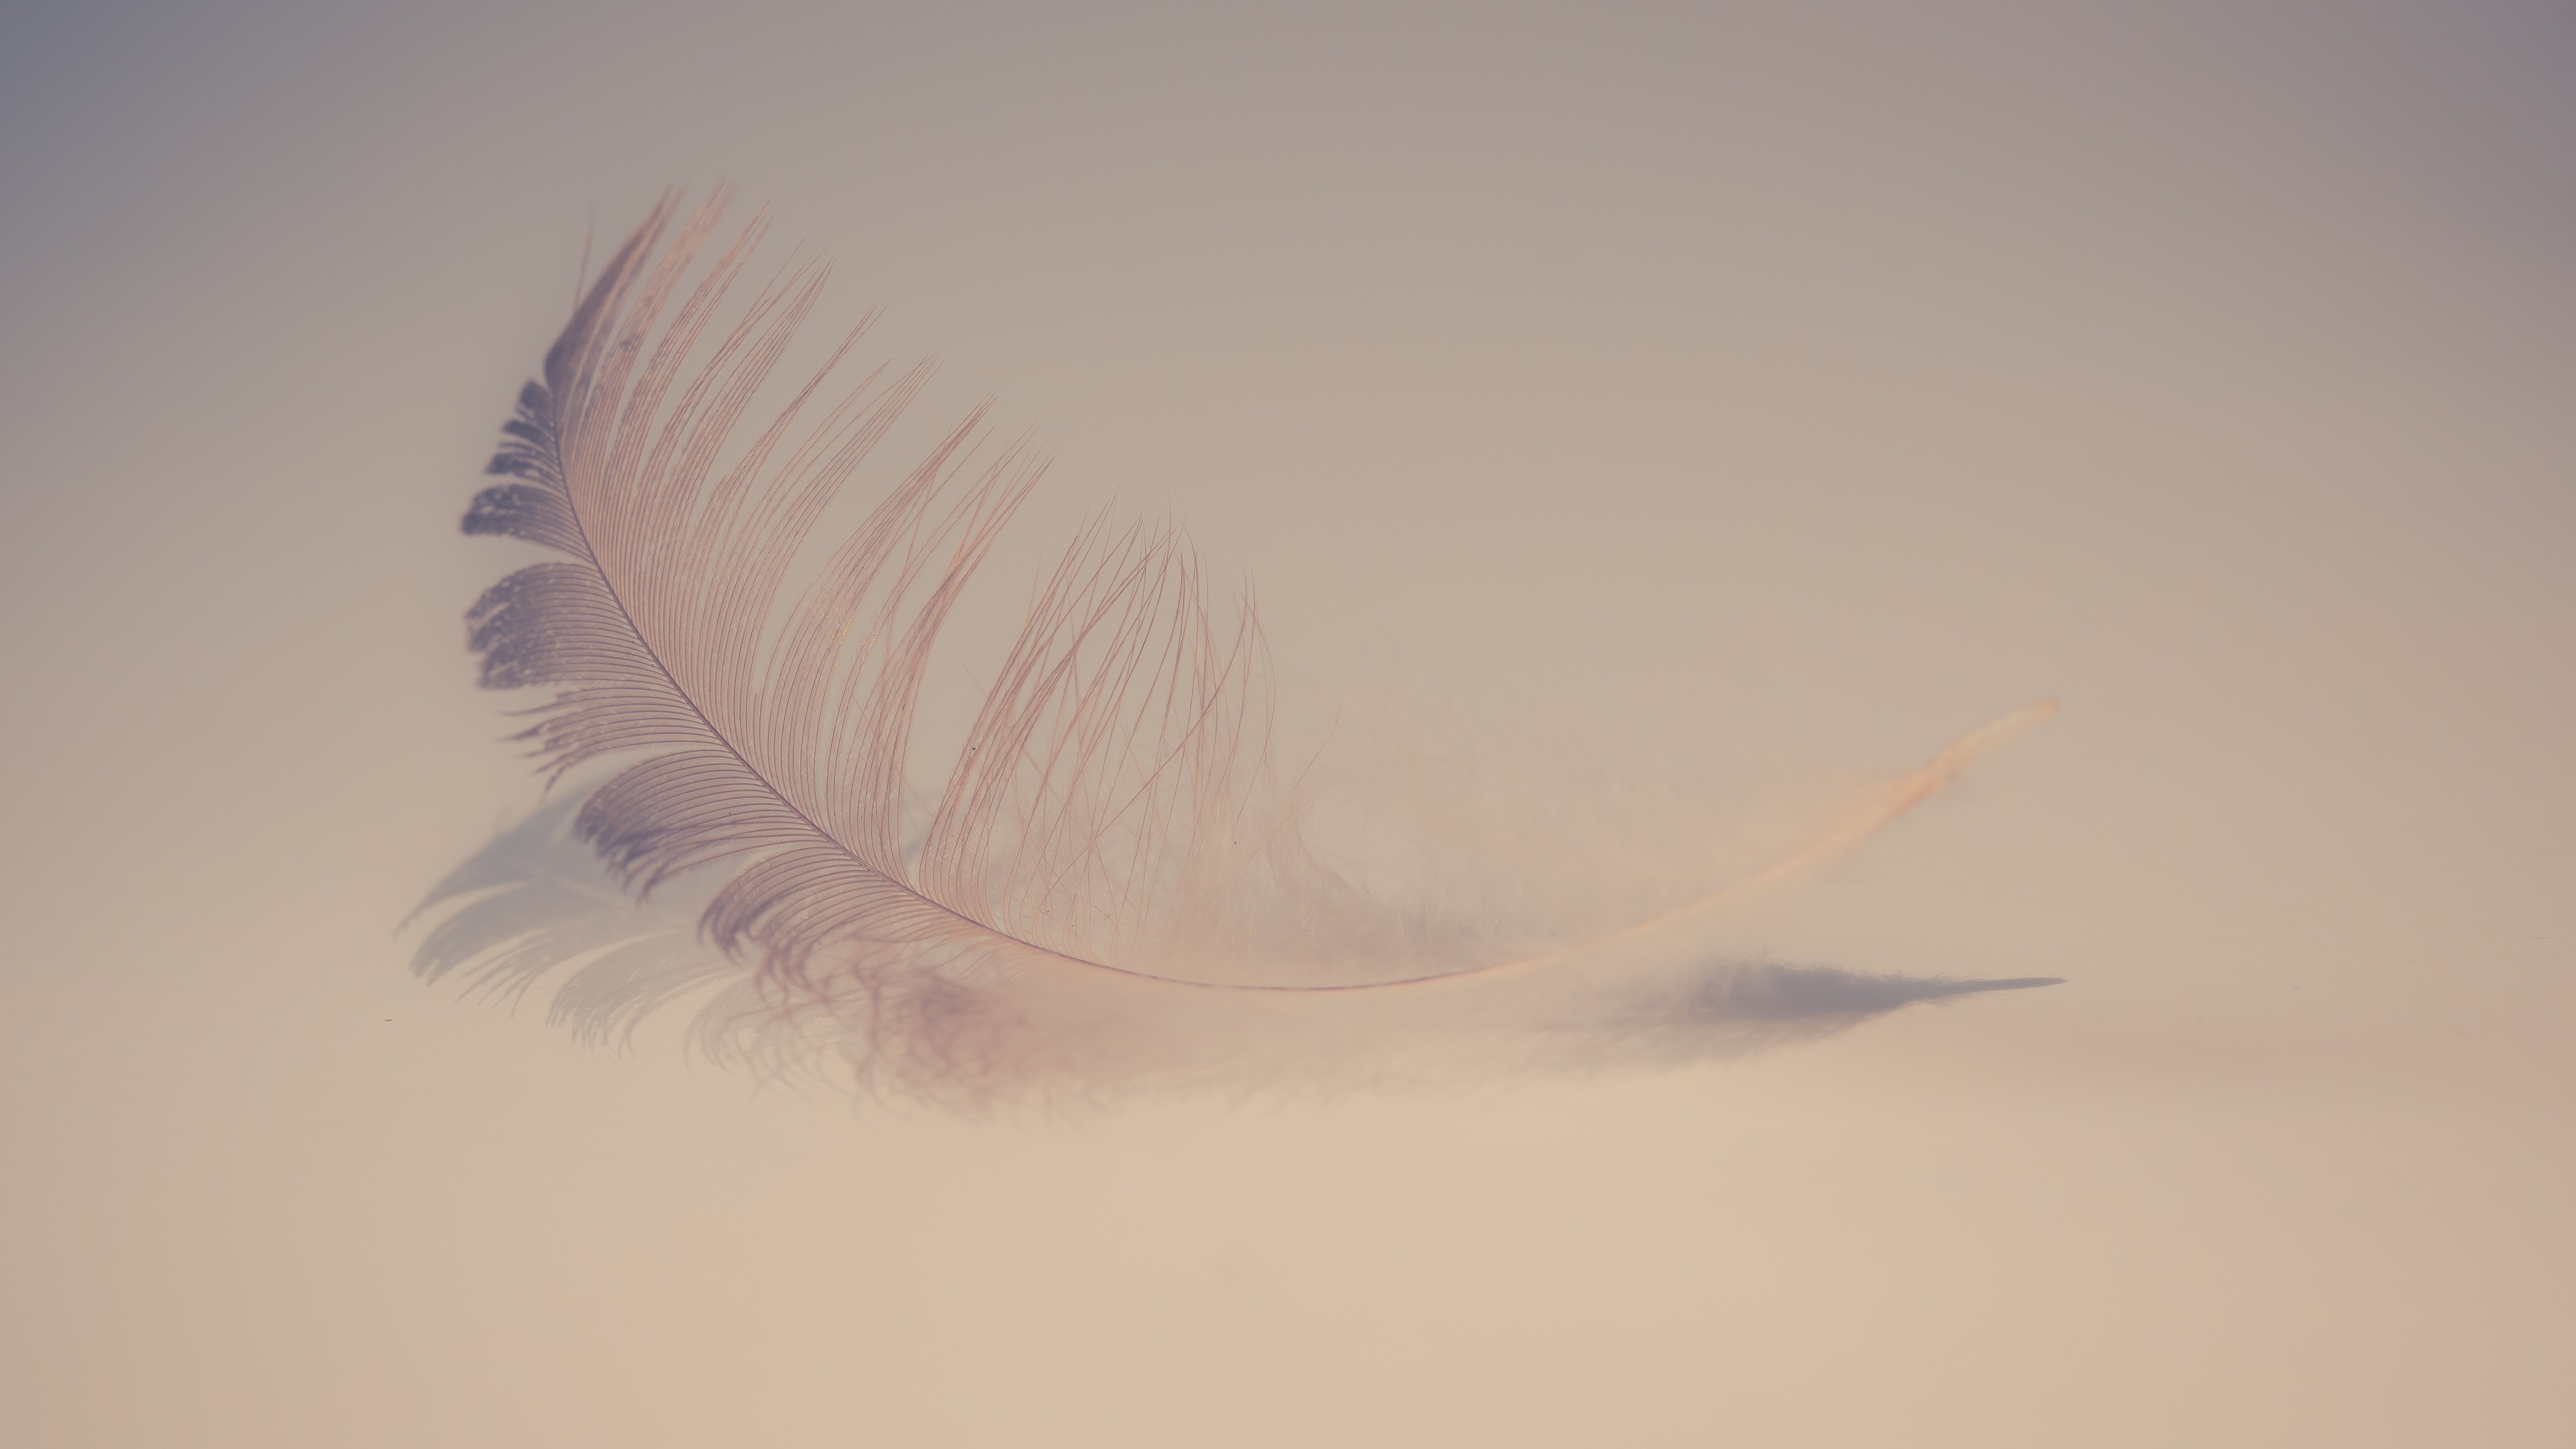 Wallpaper 4k Feather Soft 4k 4k Wallpapers 5k Wallpapers